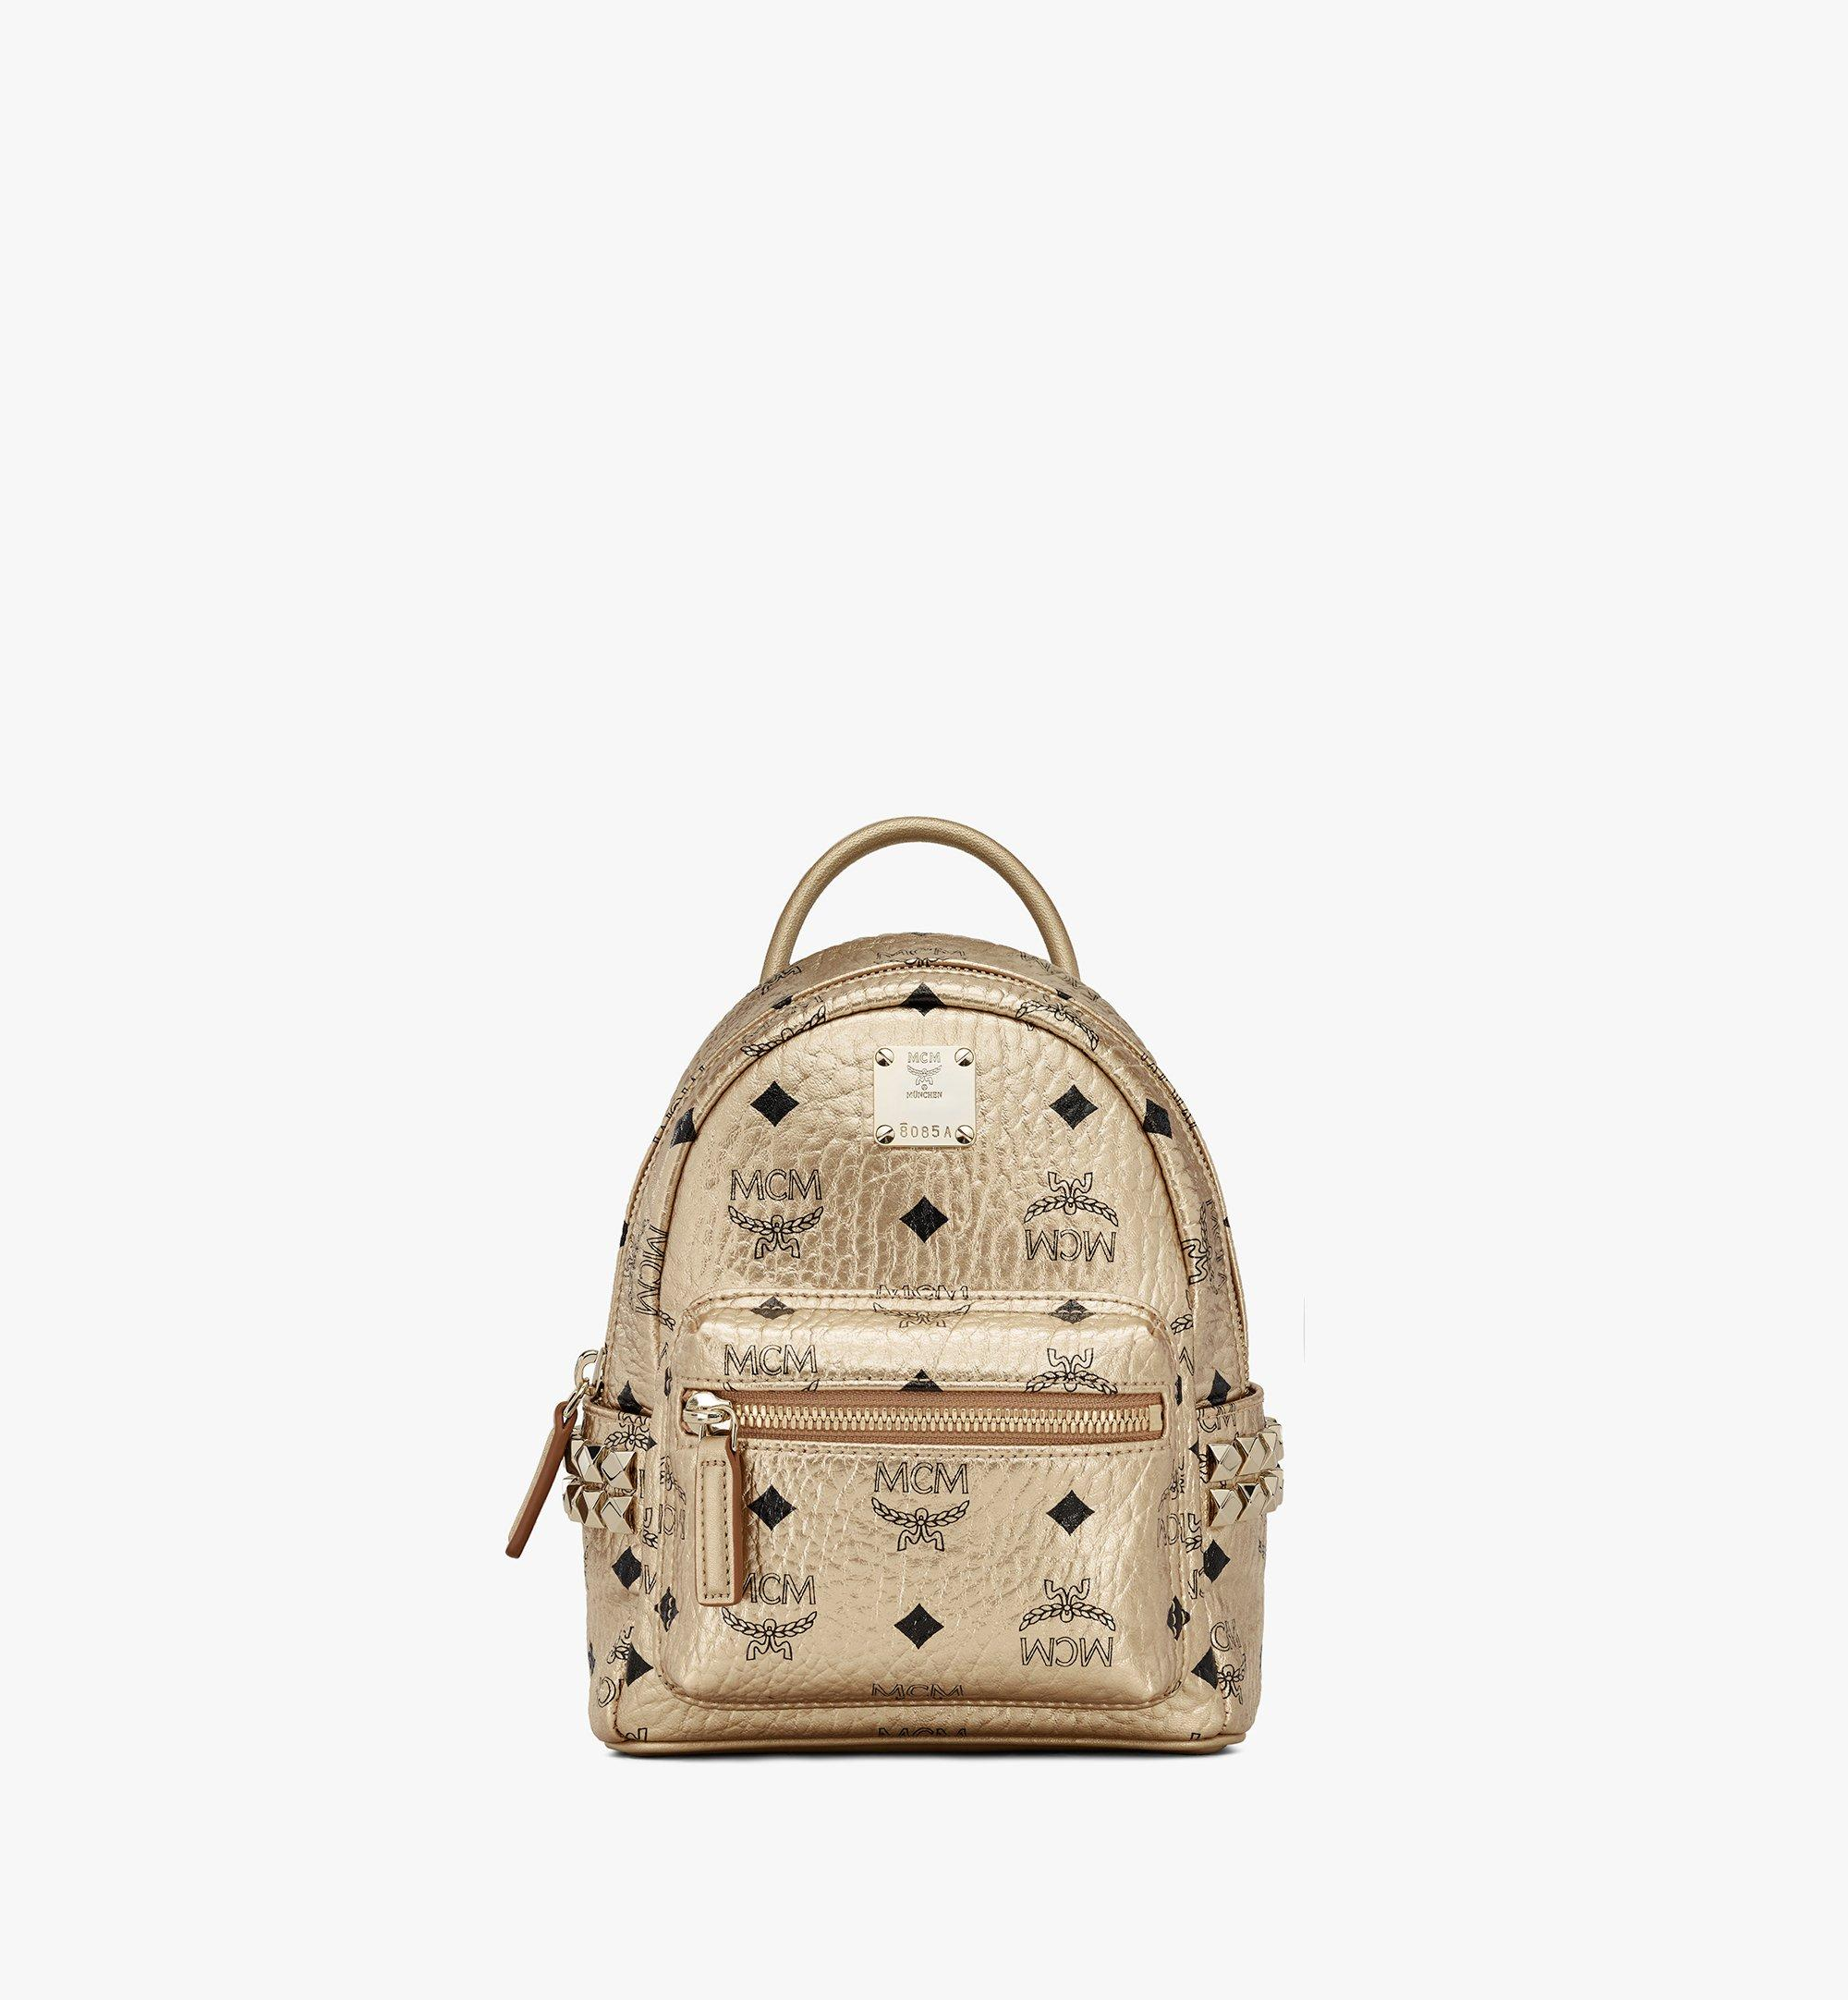 20 cm 8 in Stark Bebe Boo Backpack in Visetos Berlin Gold